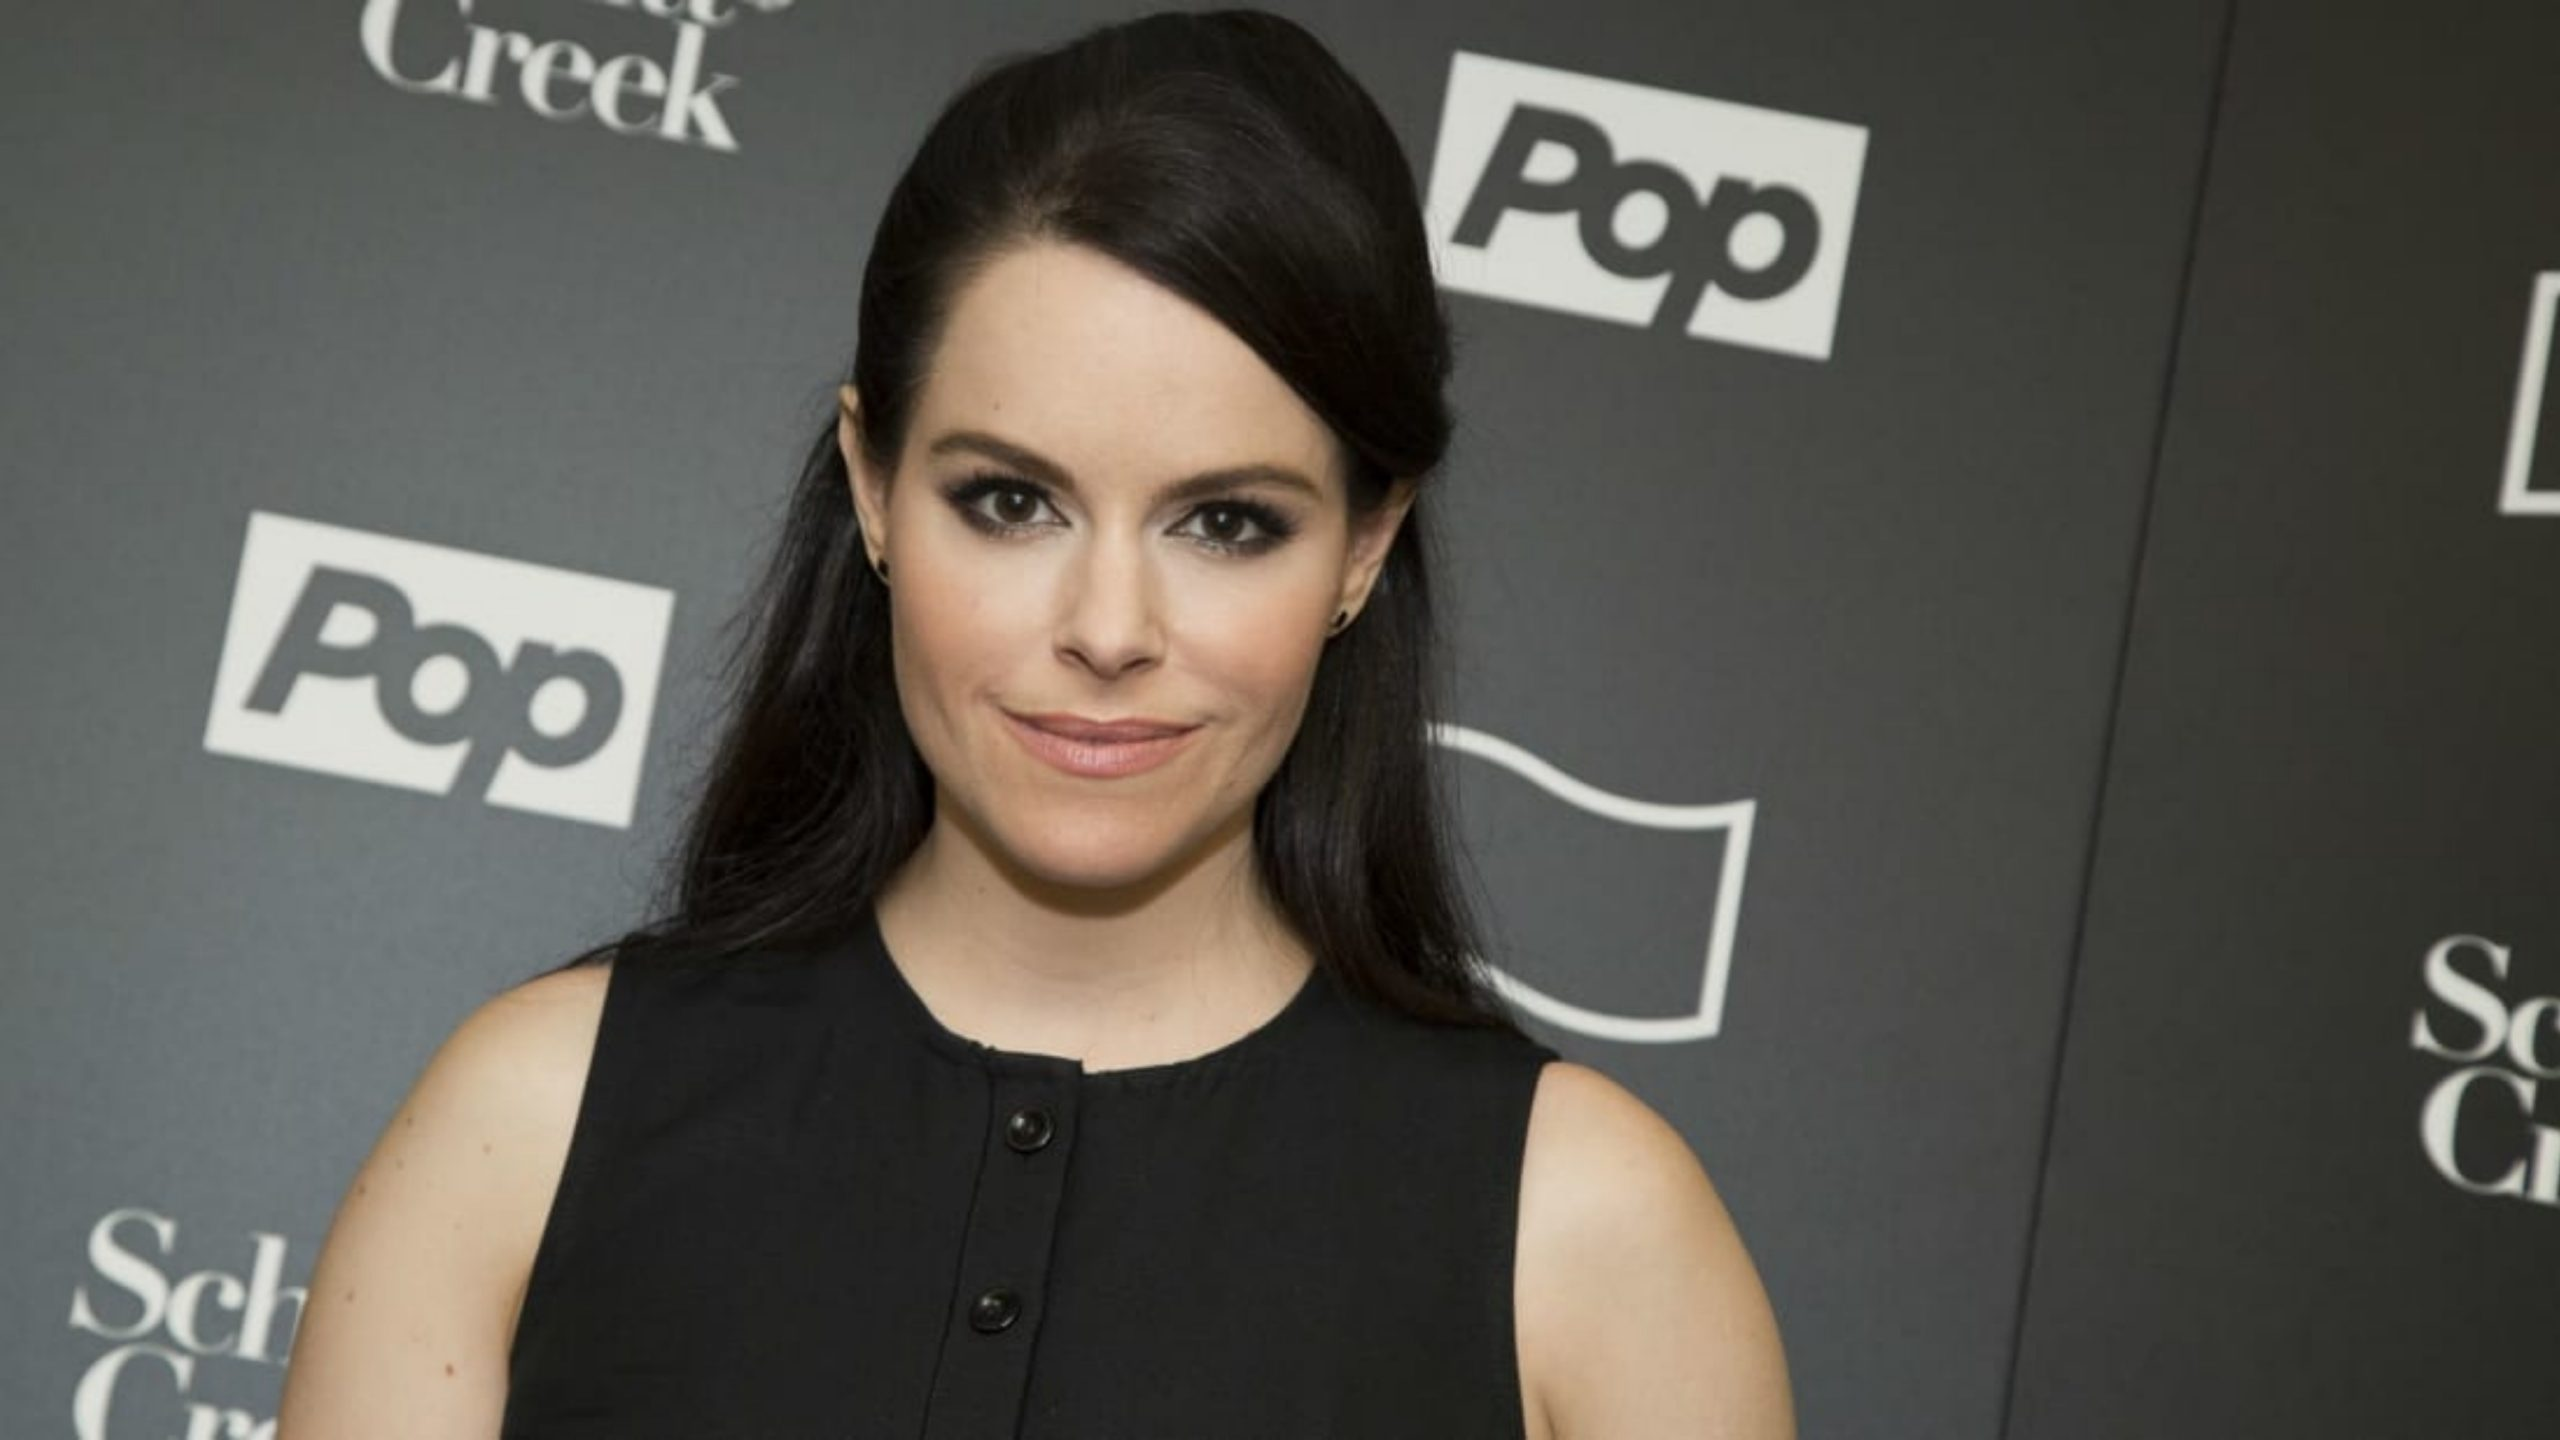 'Schitt's Creek' star Emily Hampshire to feature in Norman Lear's 'Mary Hartman' remake